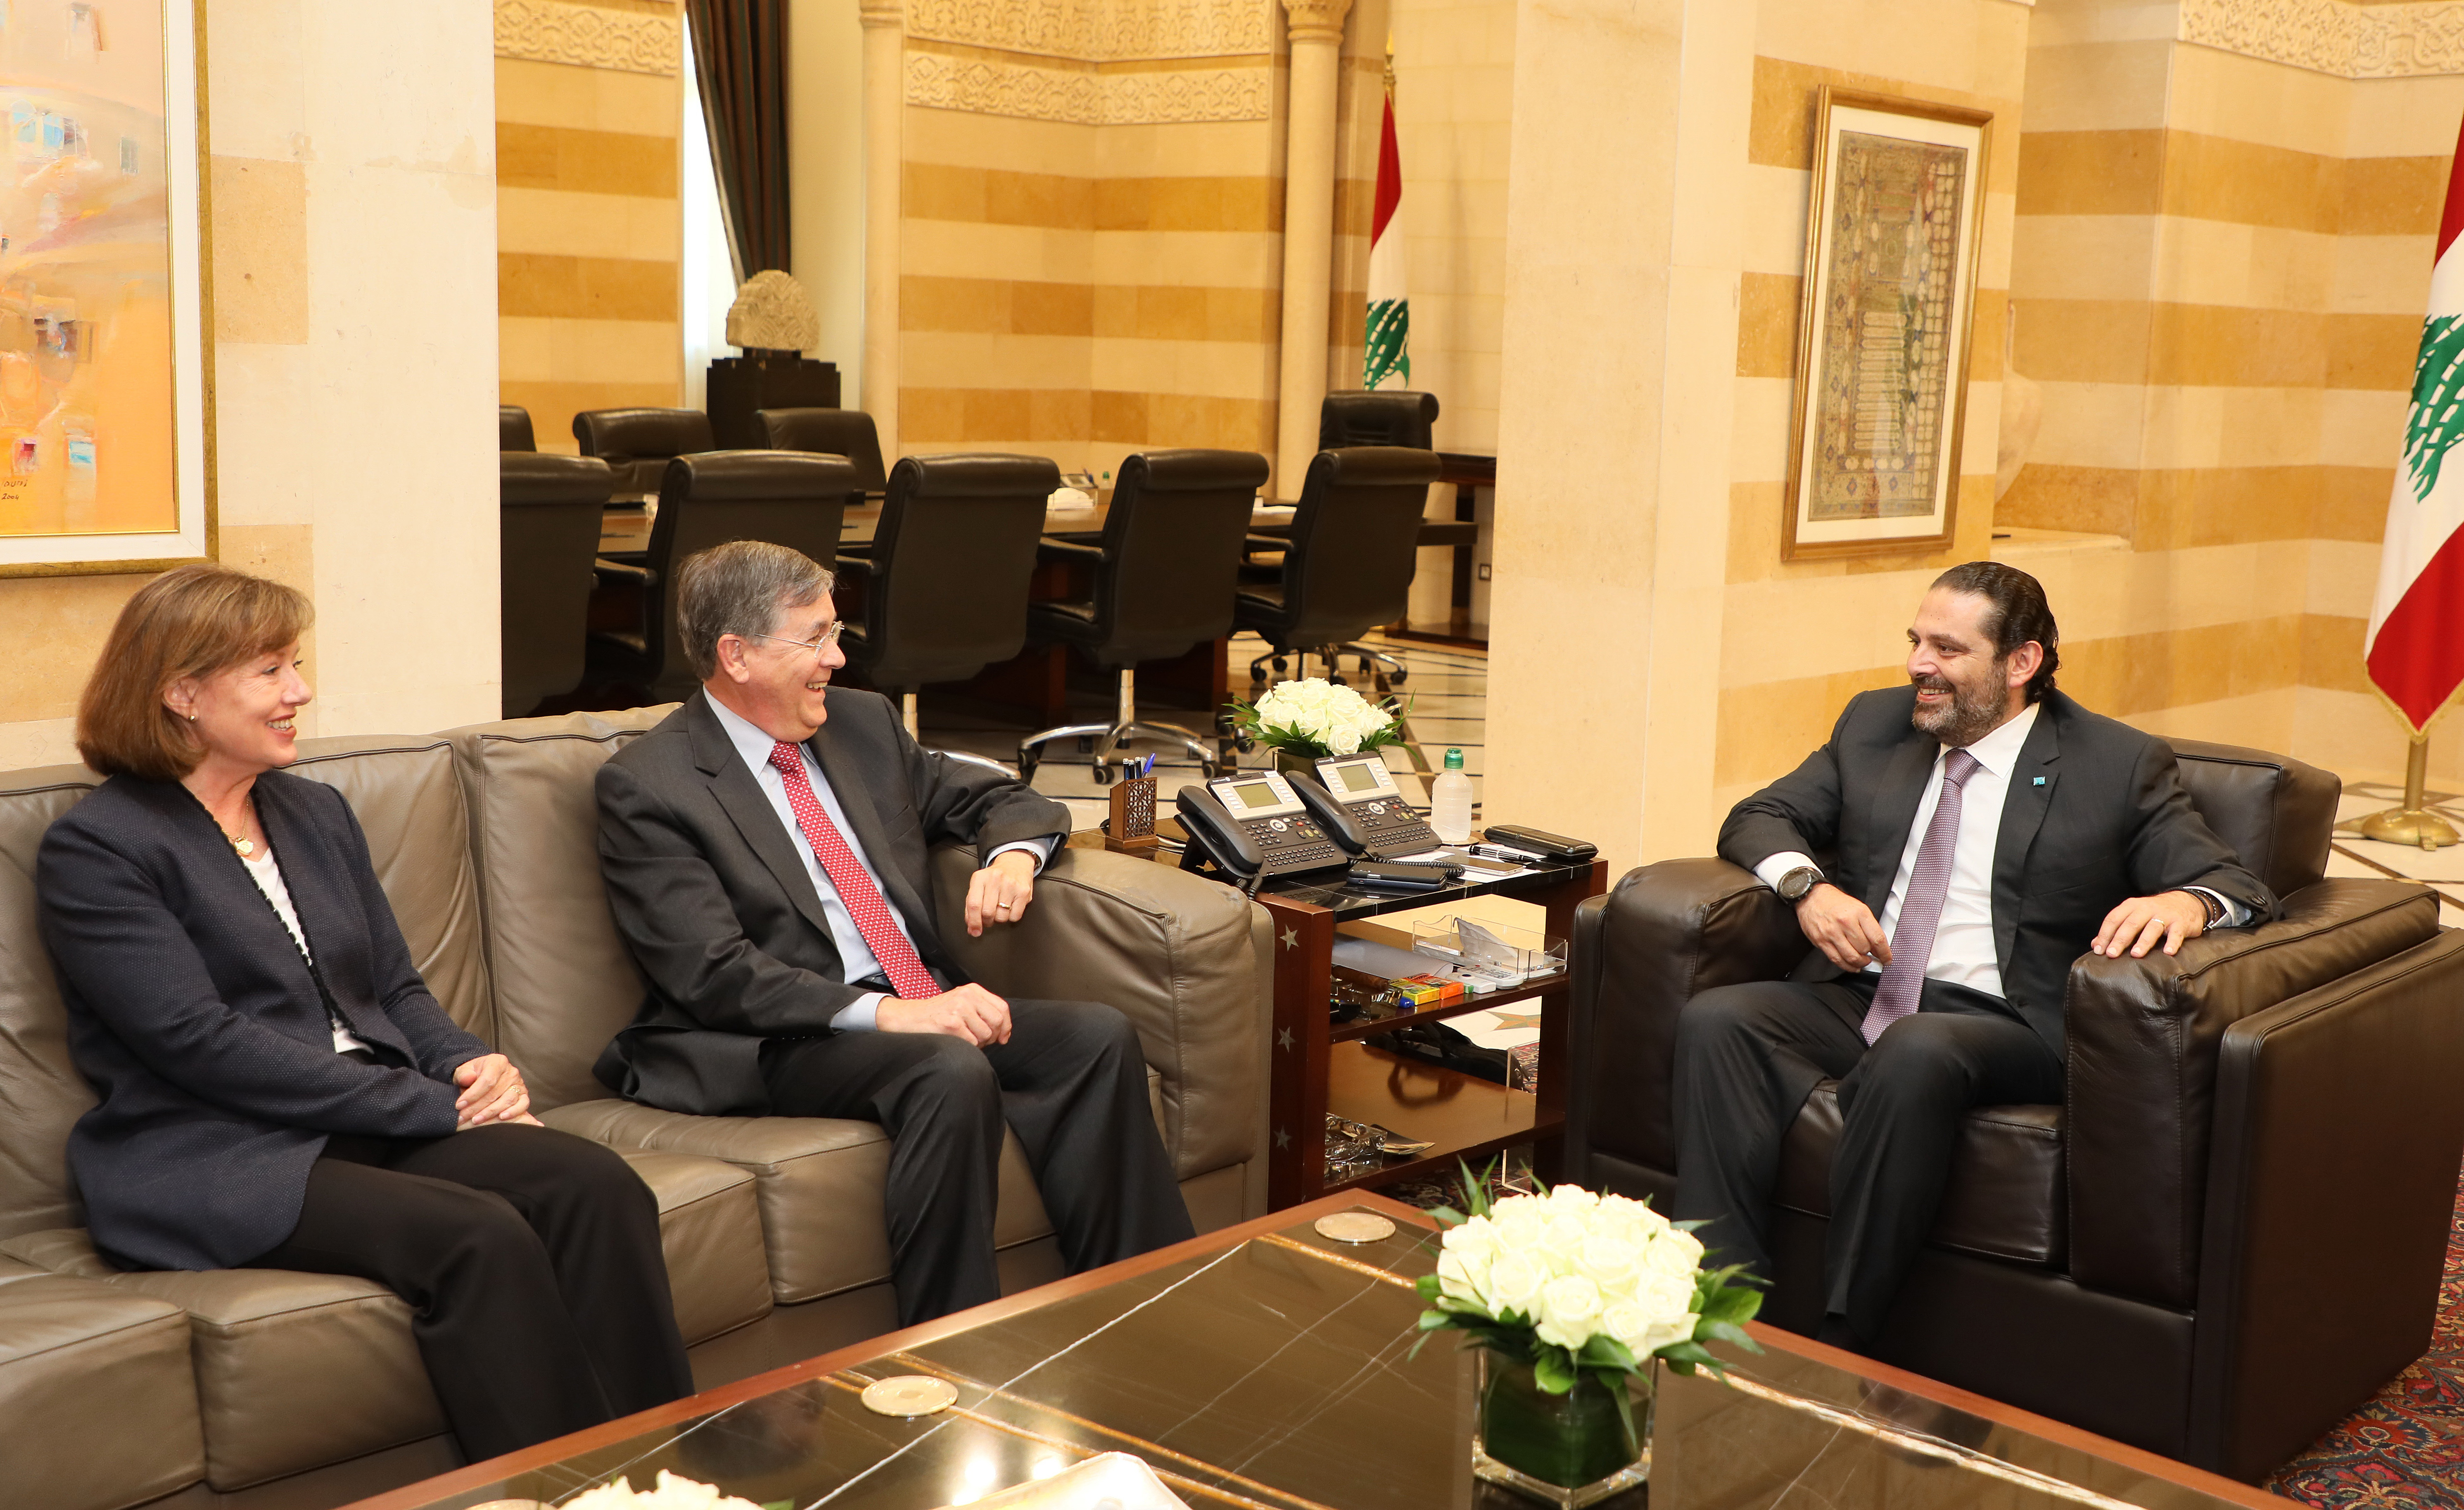 Pr Minister Saad Hariri meets Mr David Sterfield